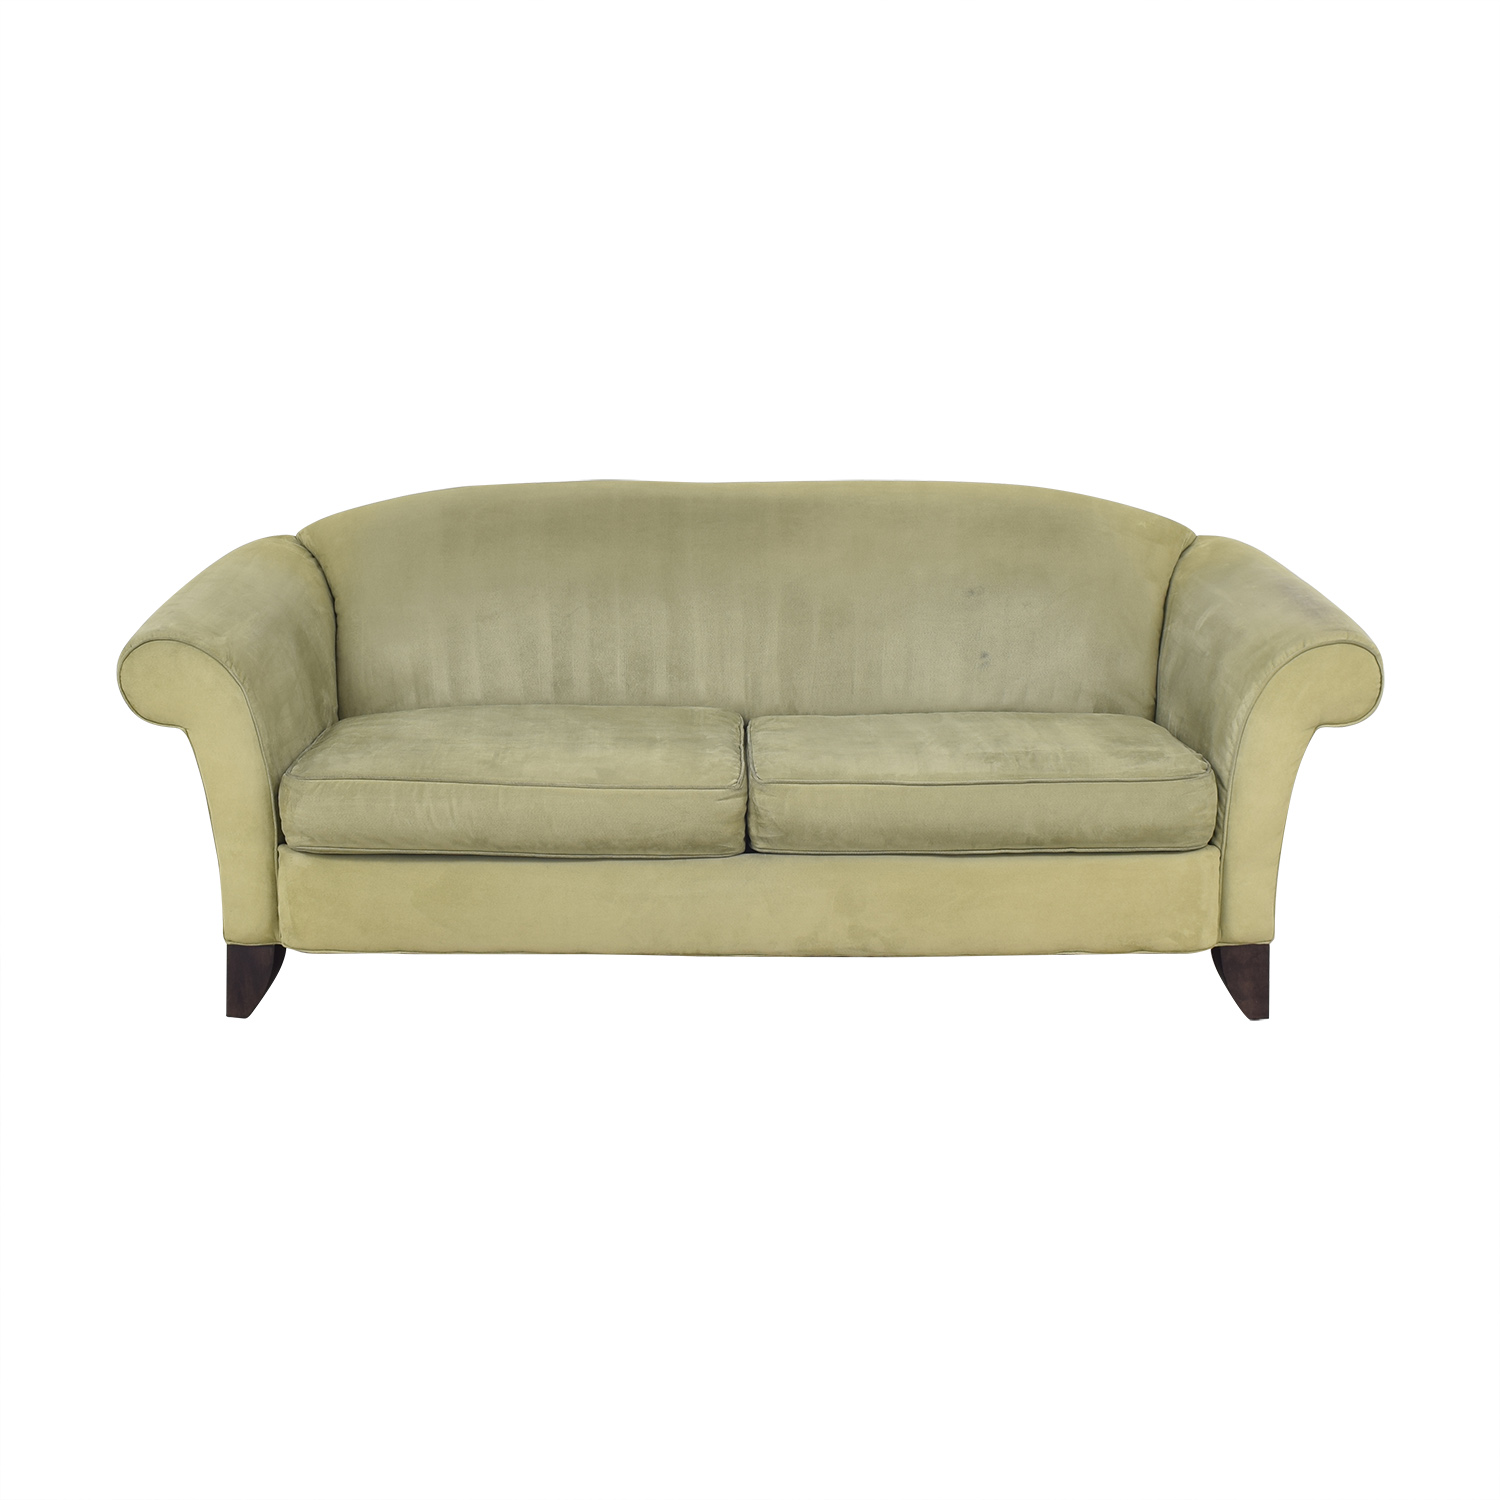 Rowe Furniture Roll Arm Sofa / Classic Sofas